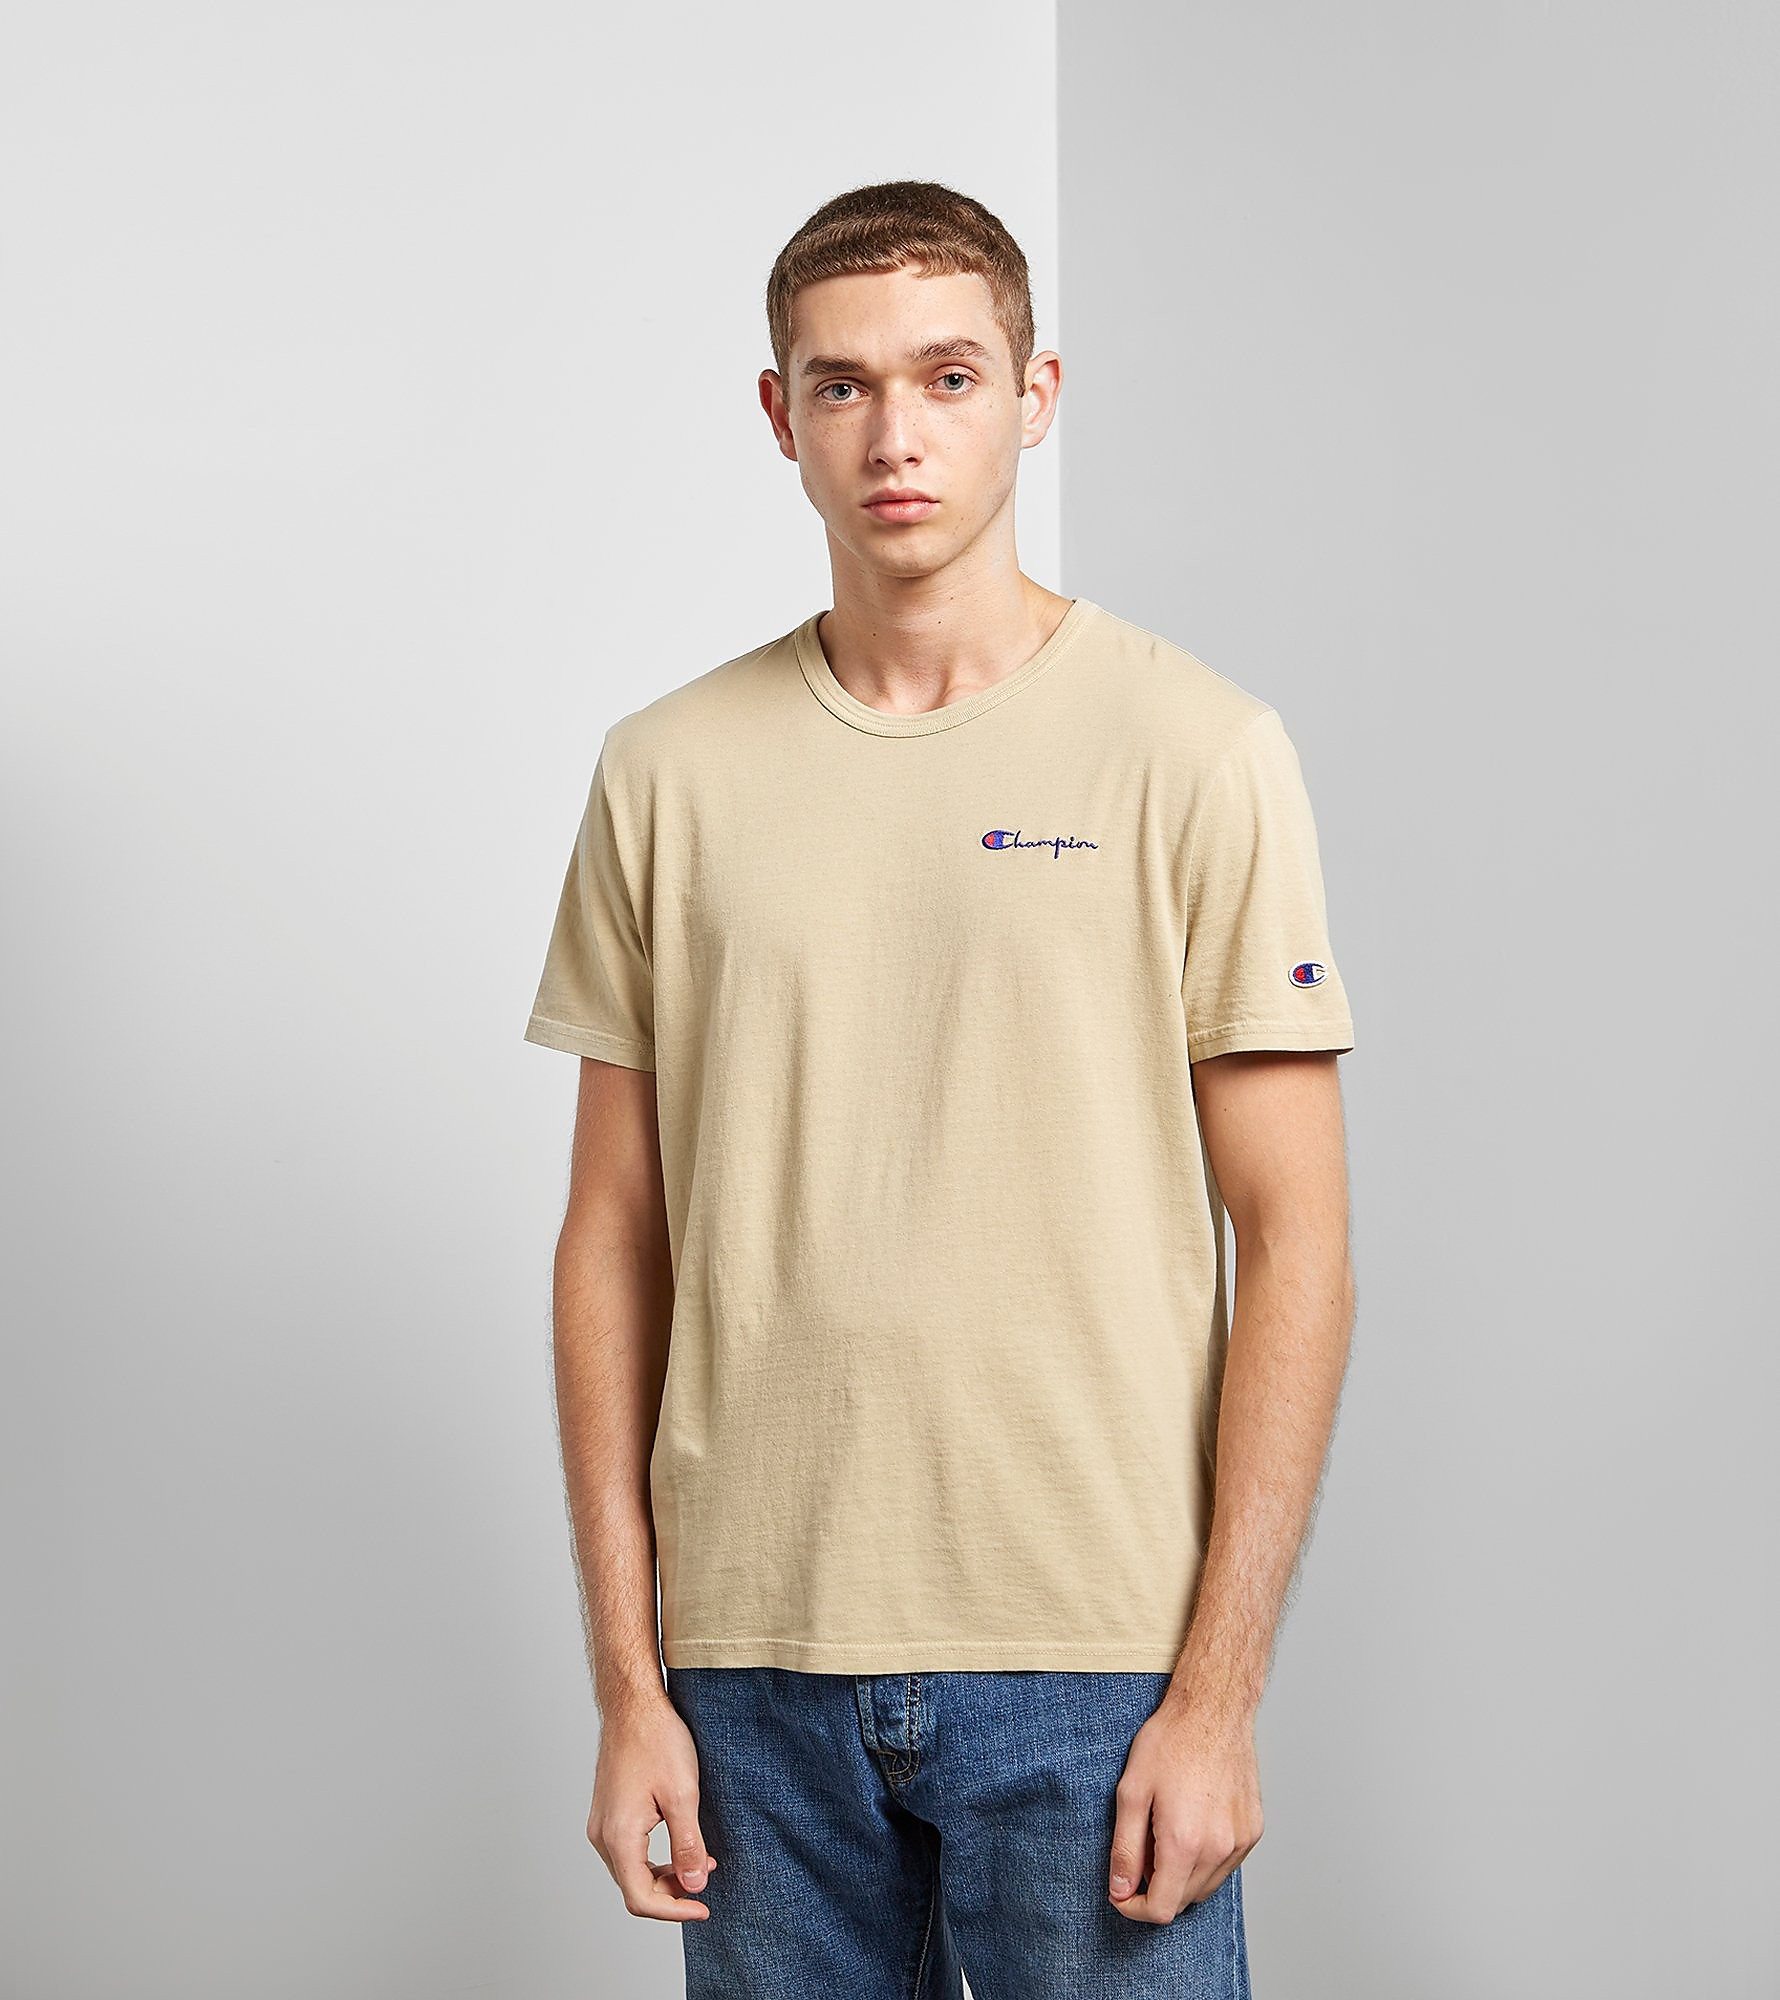 Champion Crew T-Shirt - Size? Exclusive